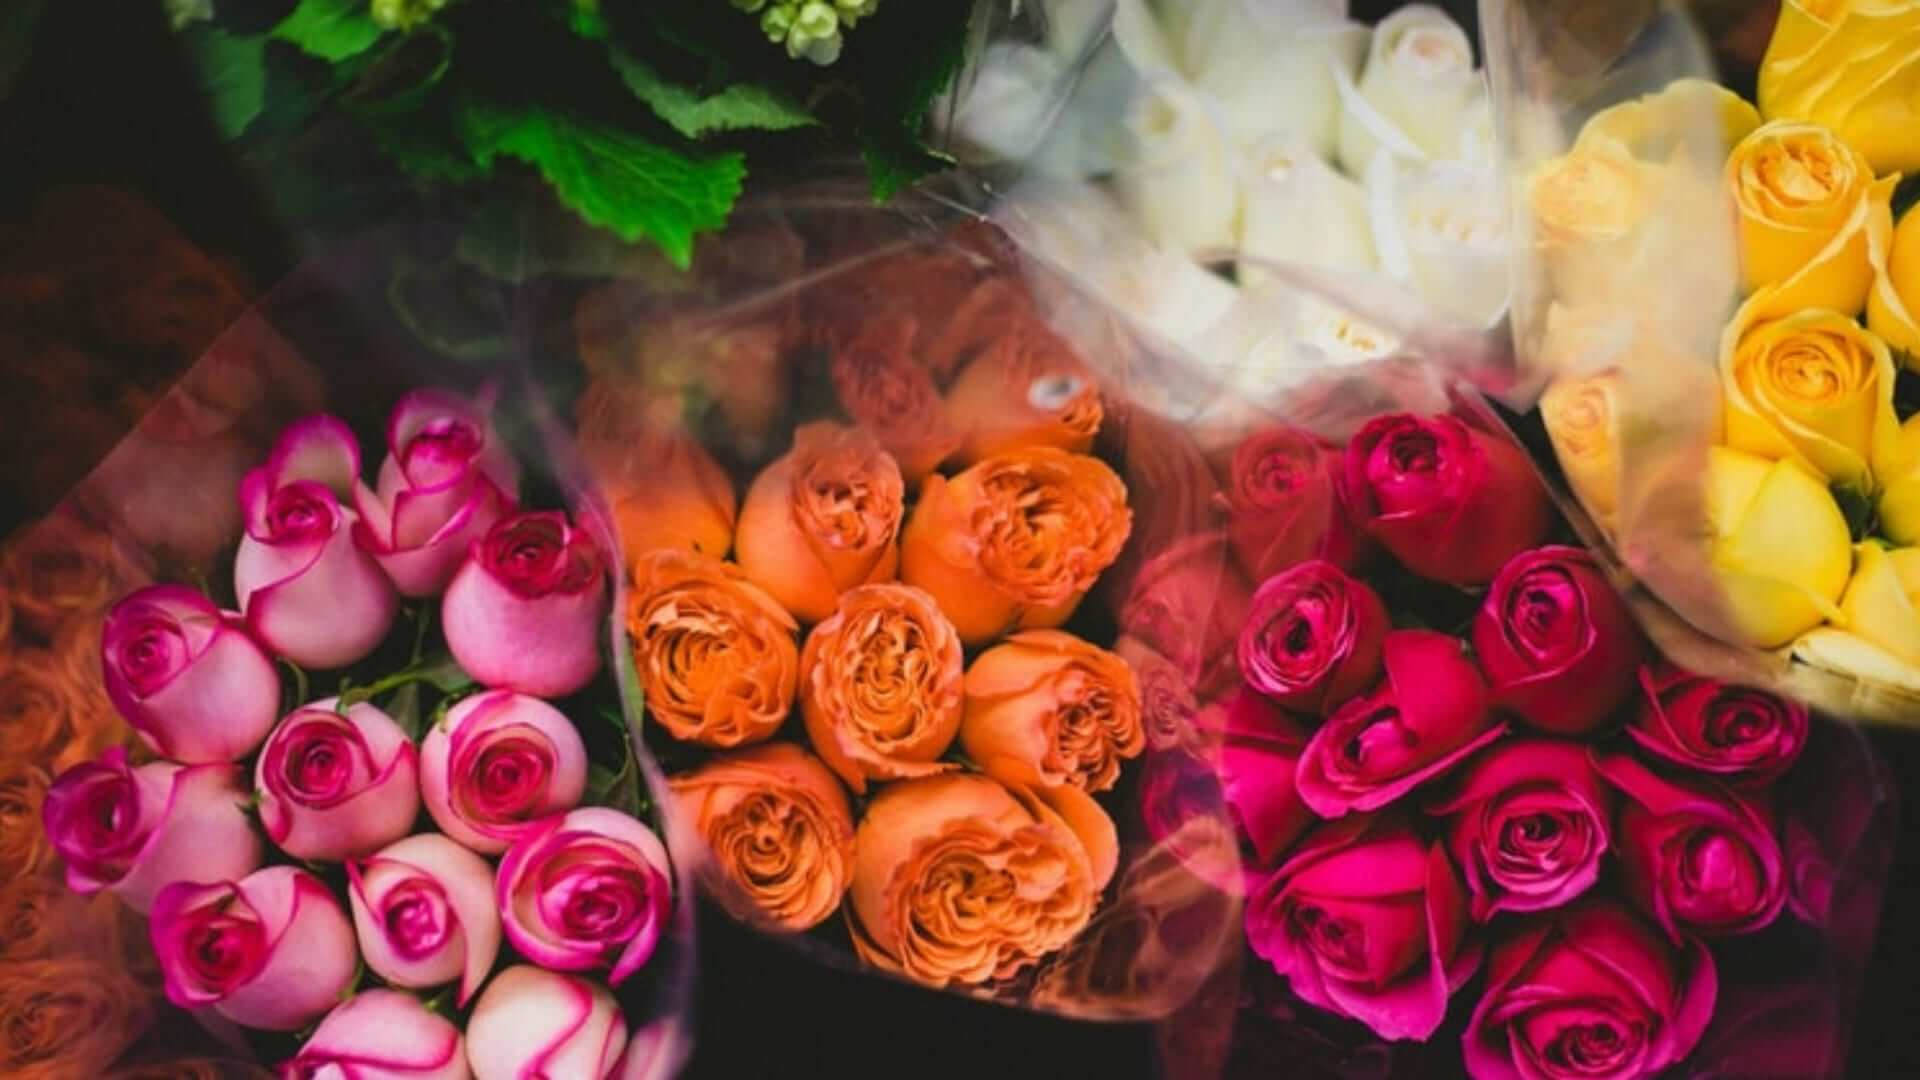 Flower bouquets with pink and orange roses at the flower market.